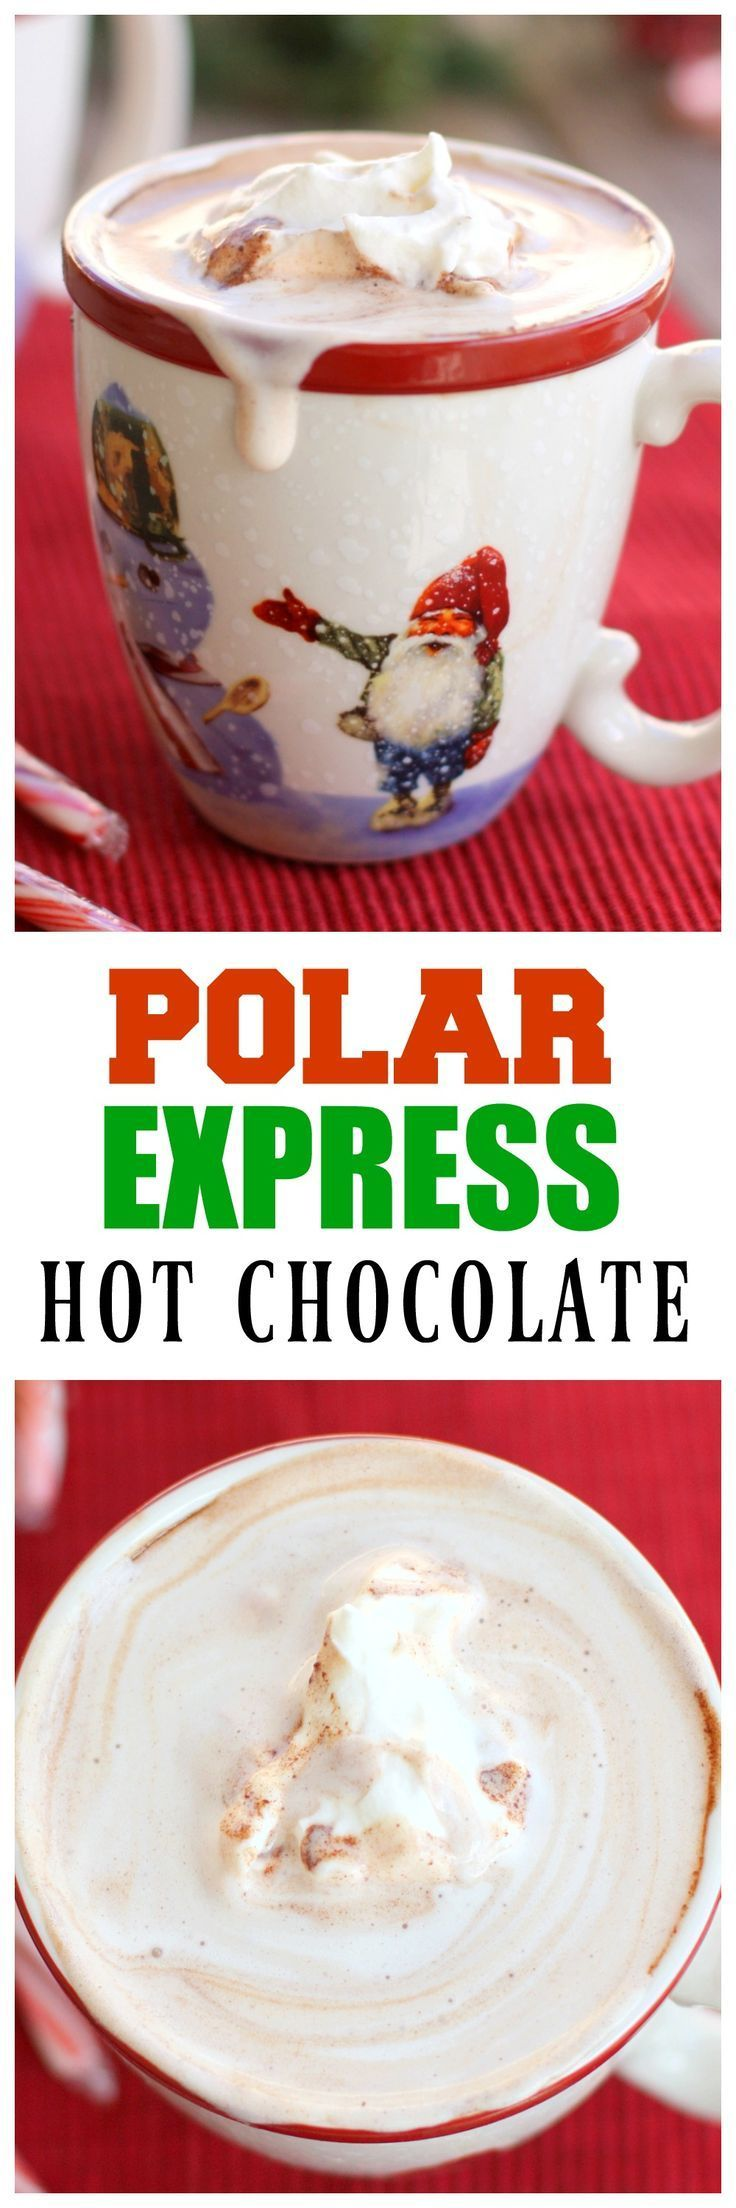 This Polar Express Hot Chocolate is just what you need to cuddle up to on the couch with your family.